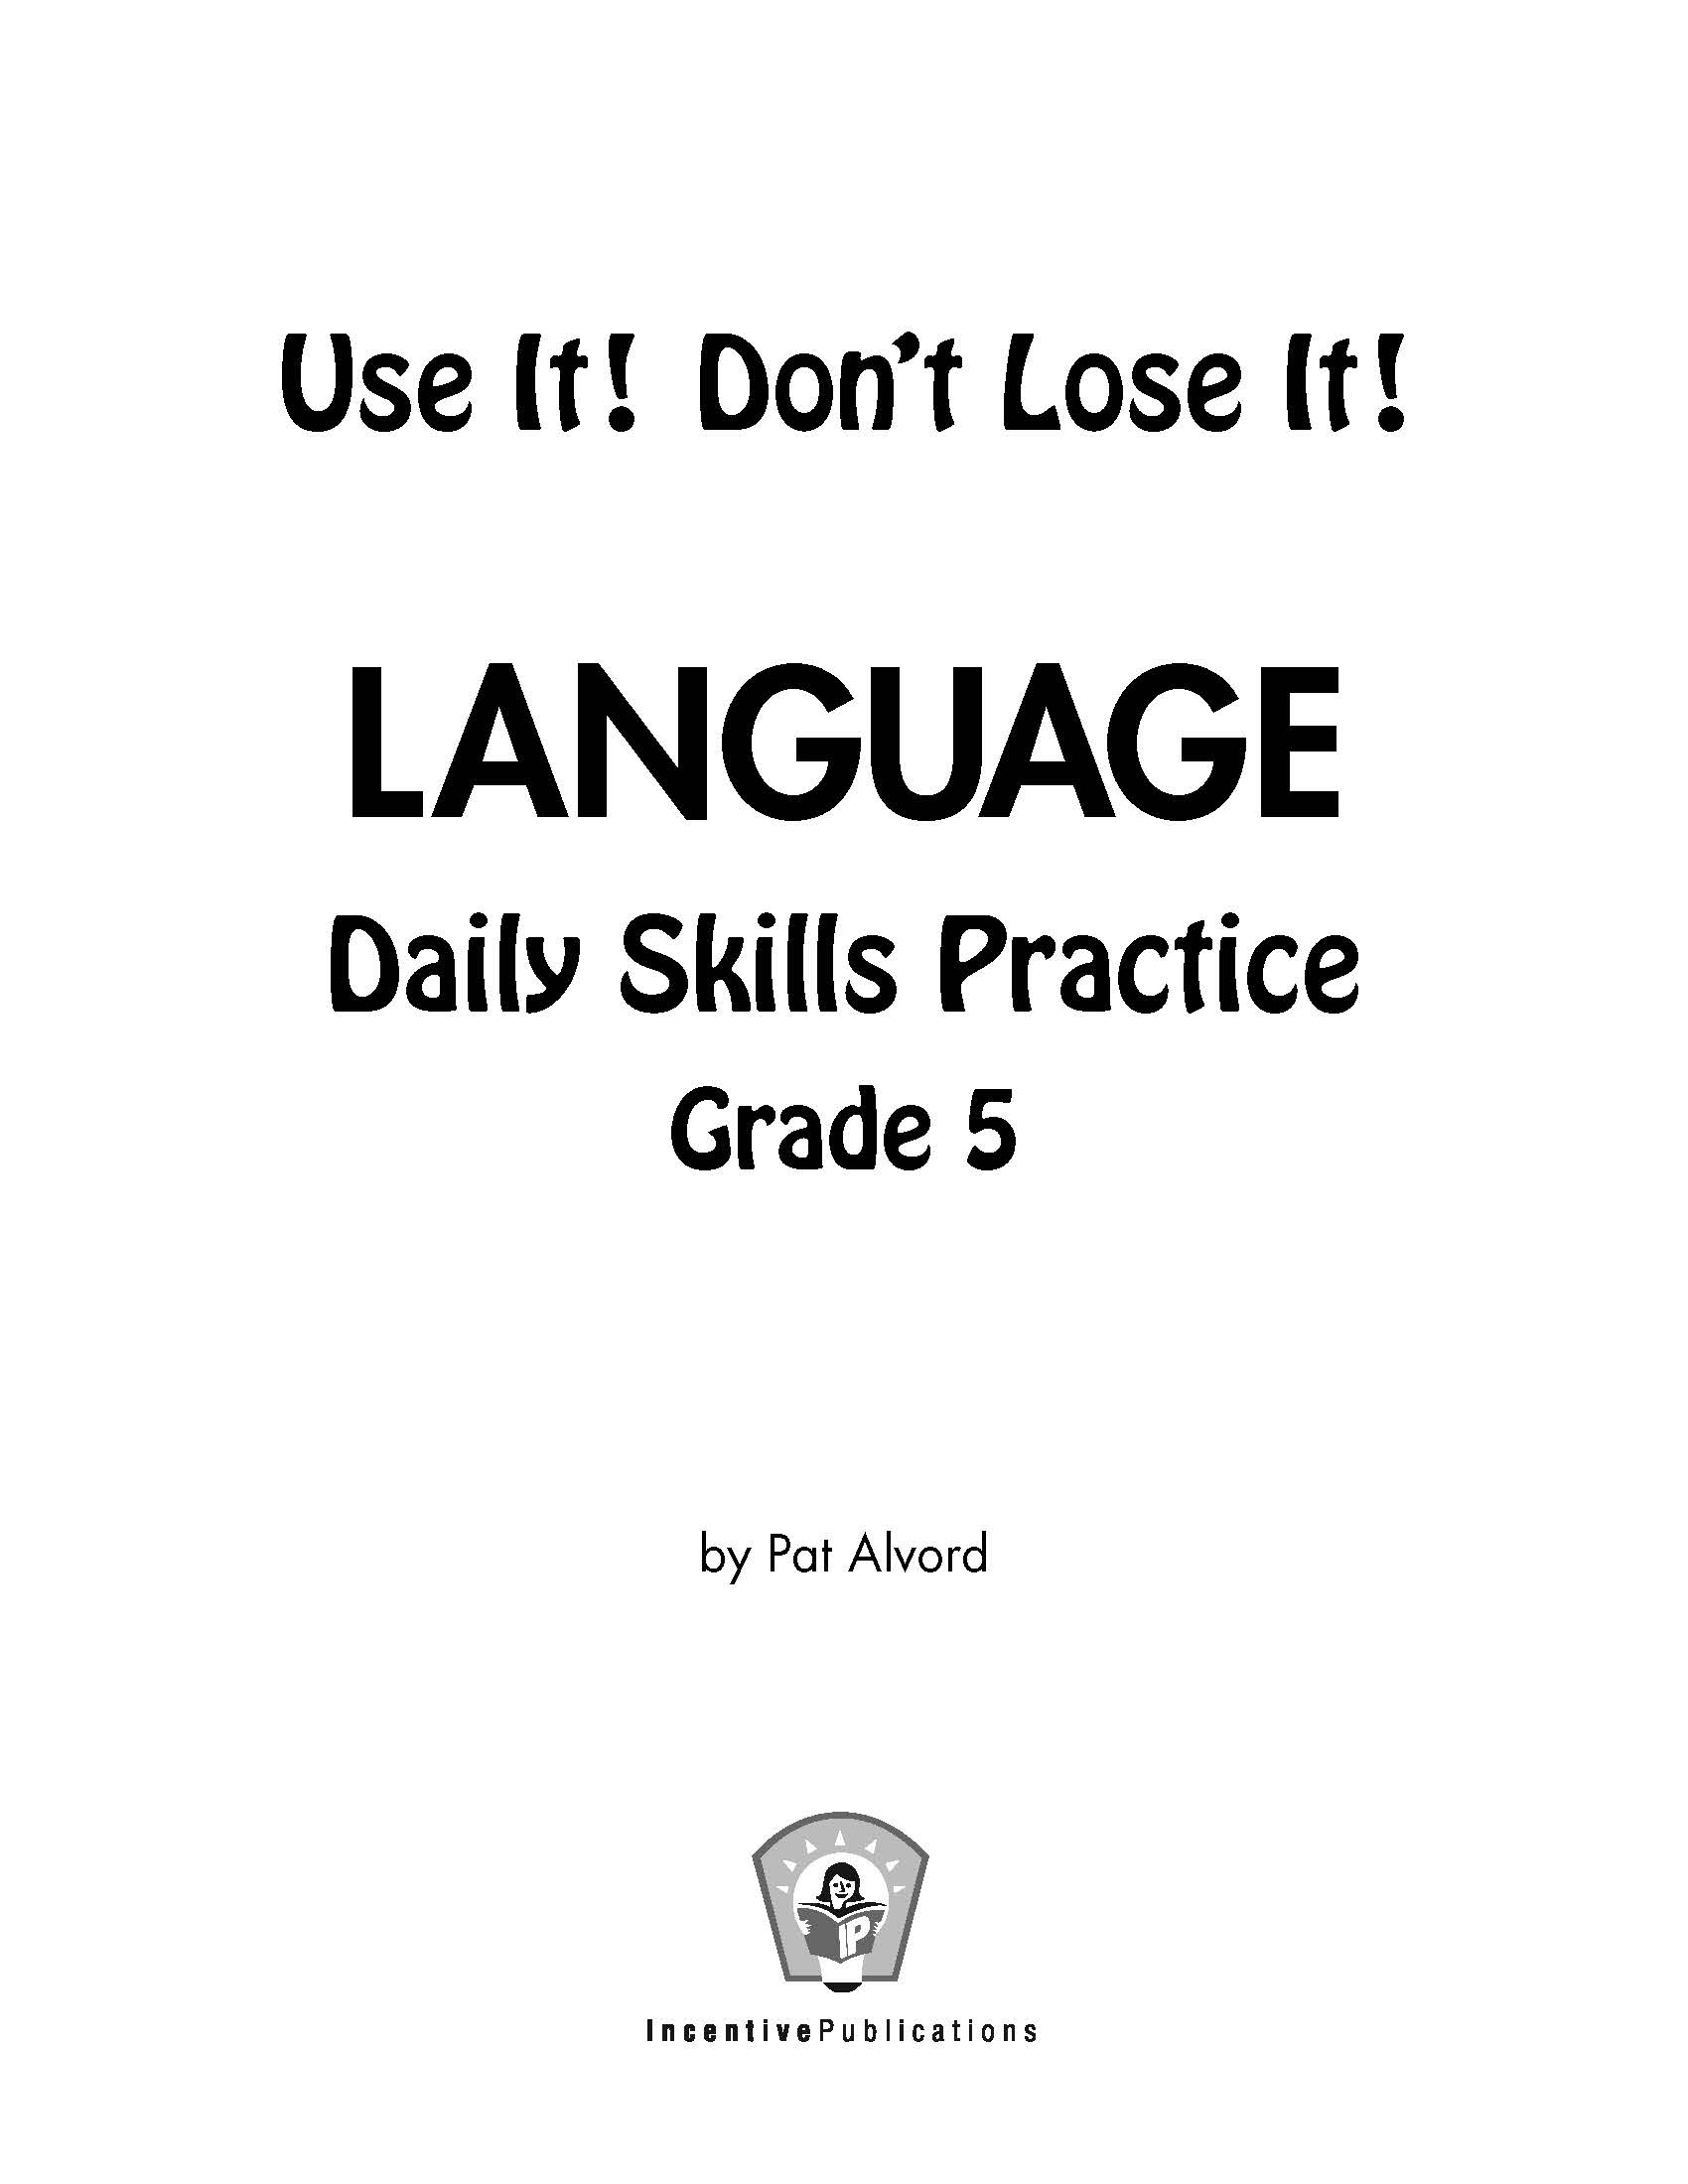 Daily Language Practice 5th Grade: Use It! Don't Lose It